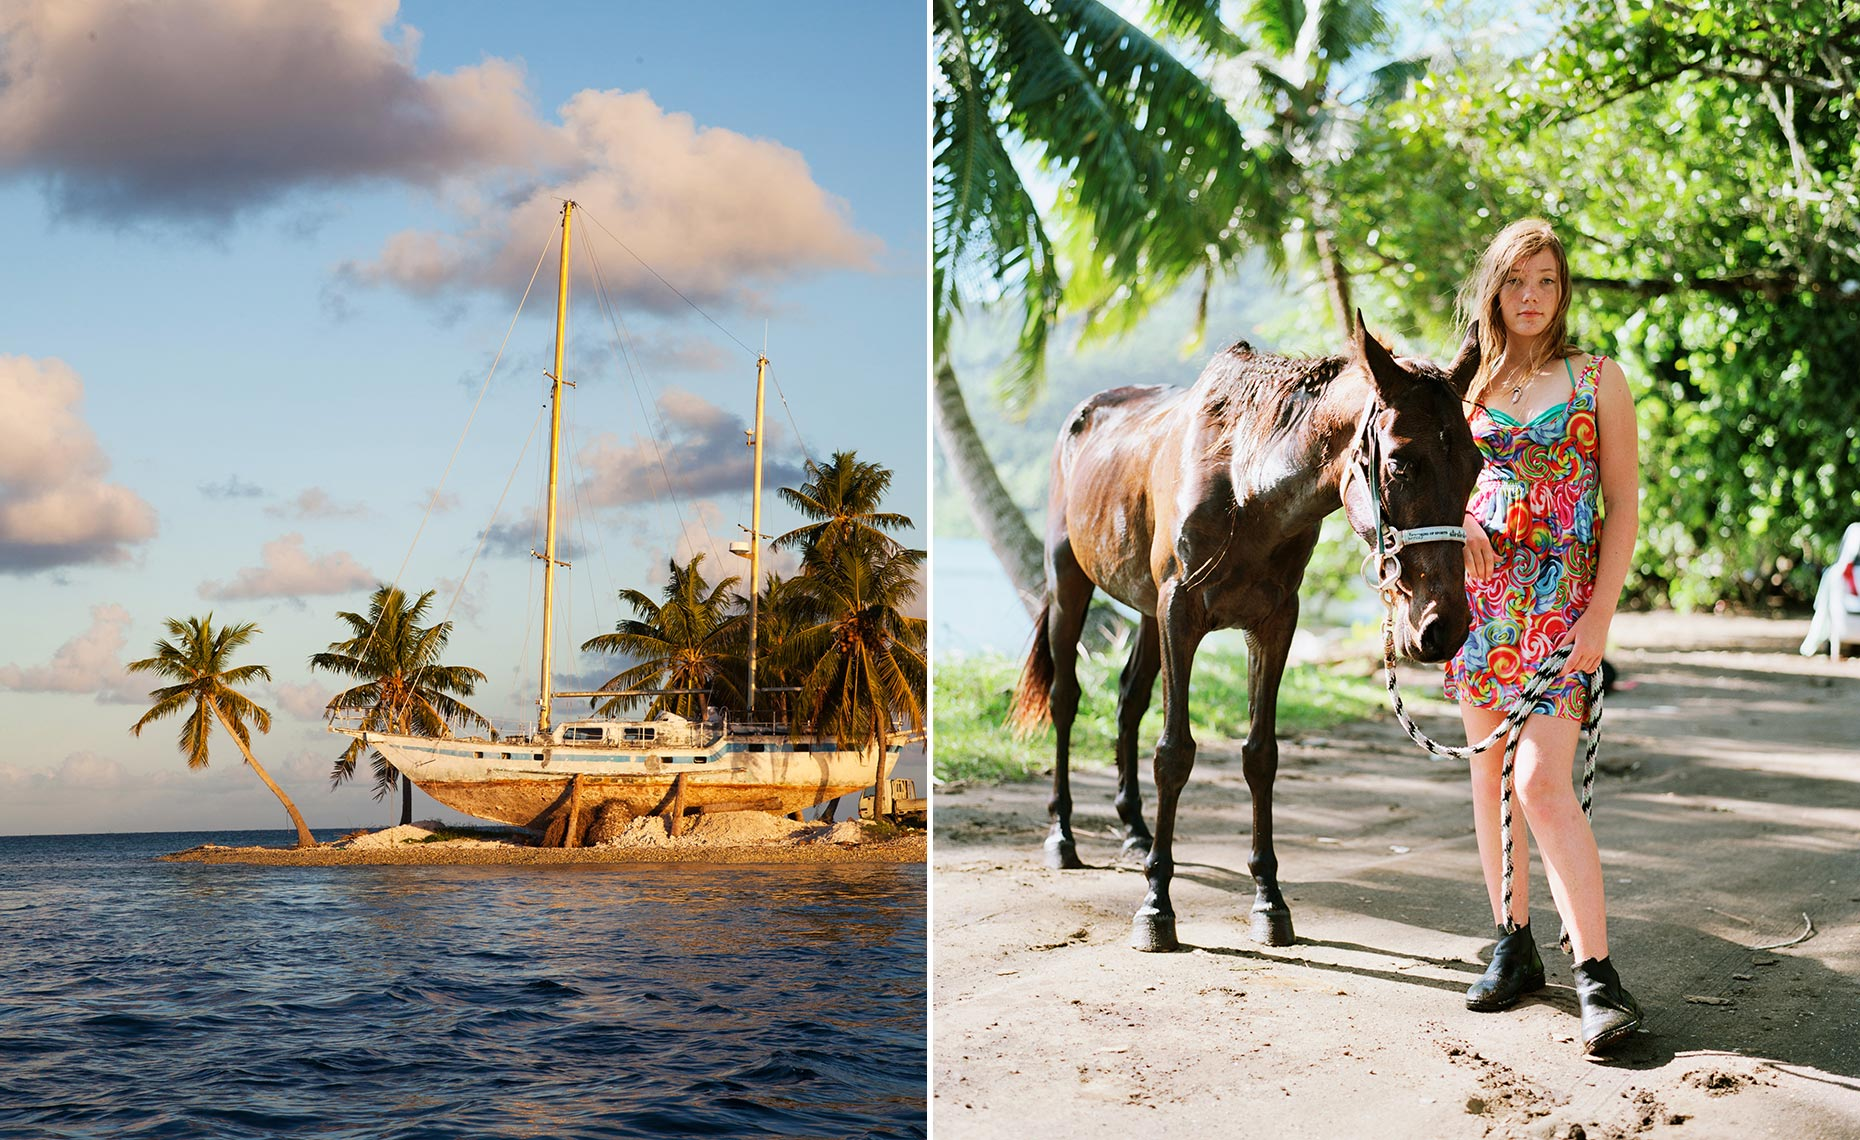 horse pony girl moorea ship abandoned shipwreck tahiti south seas french polynesia